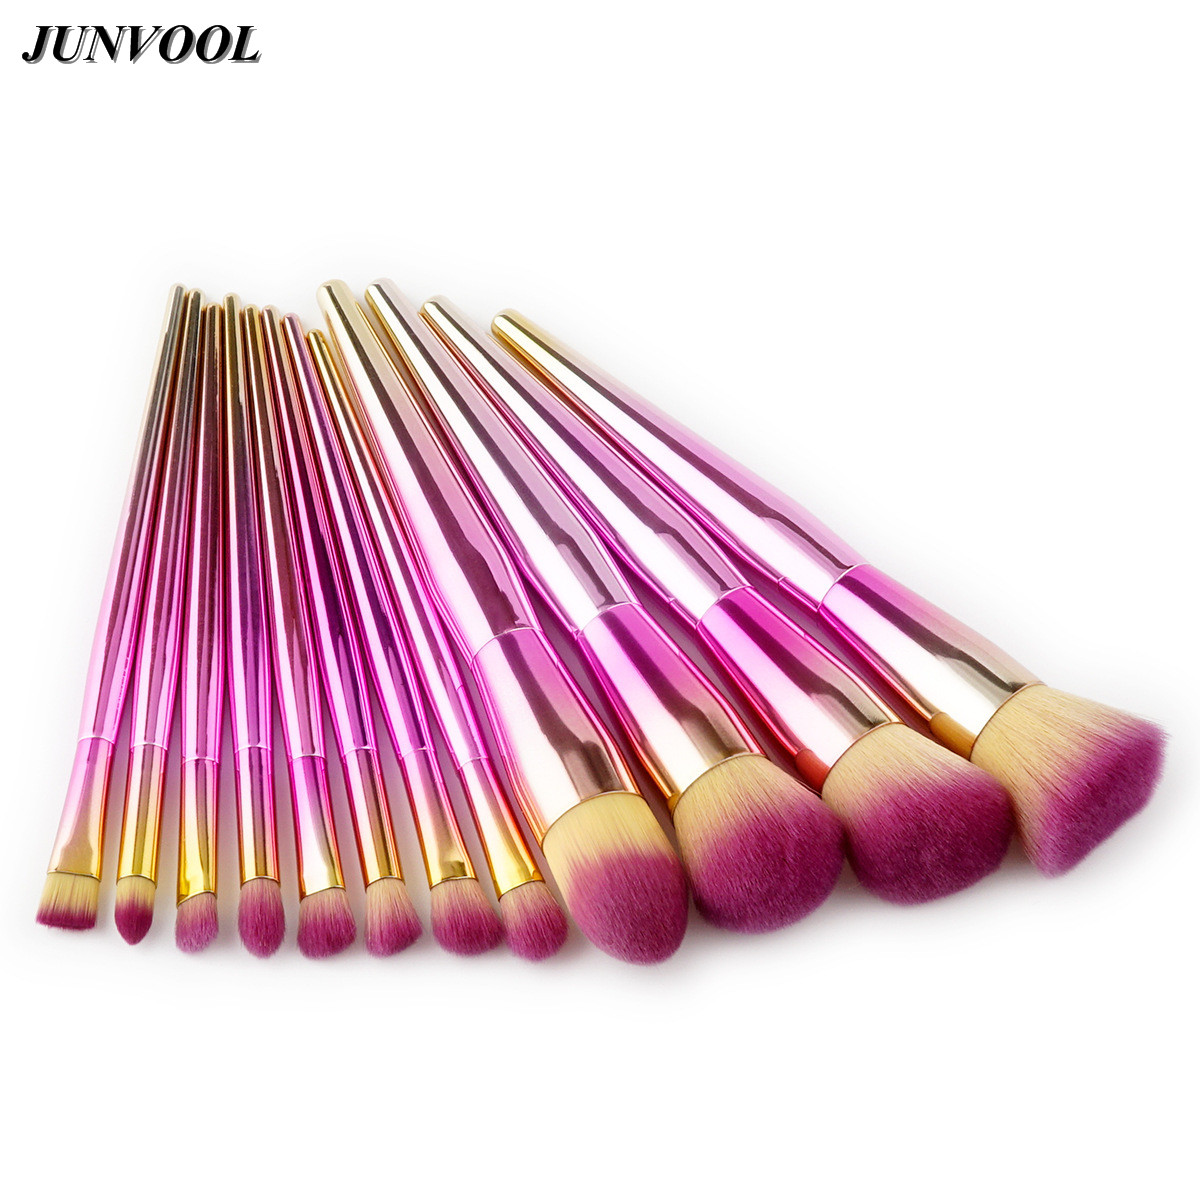 Pink 12Pcs Makeup Brushes Set Power Foundation Blending Contour Blush Eye Brow Shadow Highlighter Make Up Brush Beauty Tools New makeup brushes set power foundation blending eye shadow contour blush face beauty mermaid make up brush tool kit new arrival